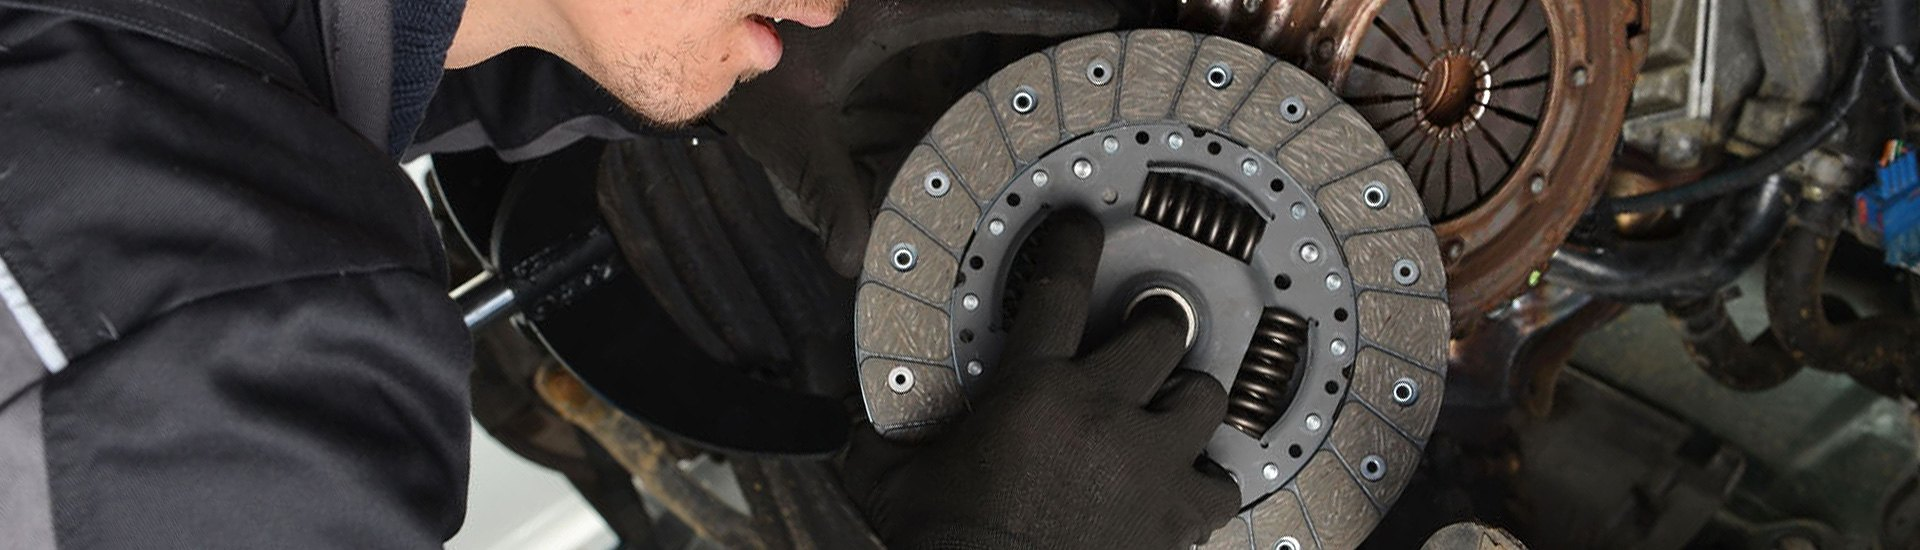 Clutch Kit Vs Disc Or Pressure Plate Manual Transmission Diagram Brake And Pedal Parts